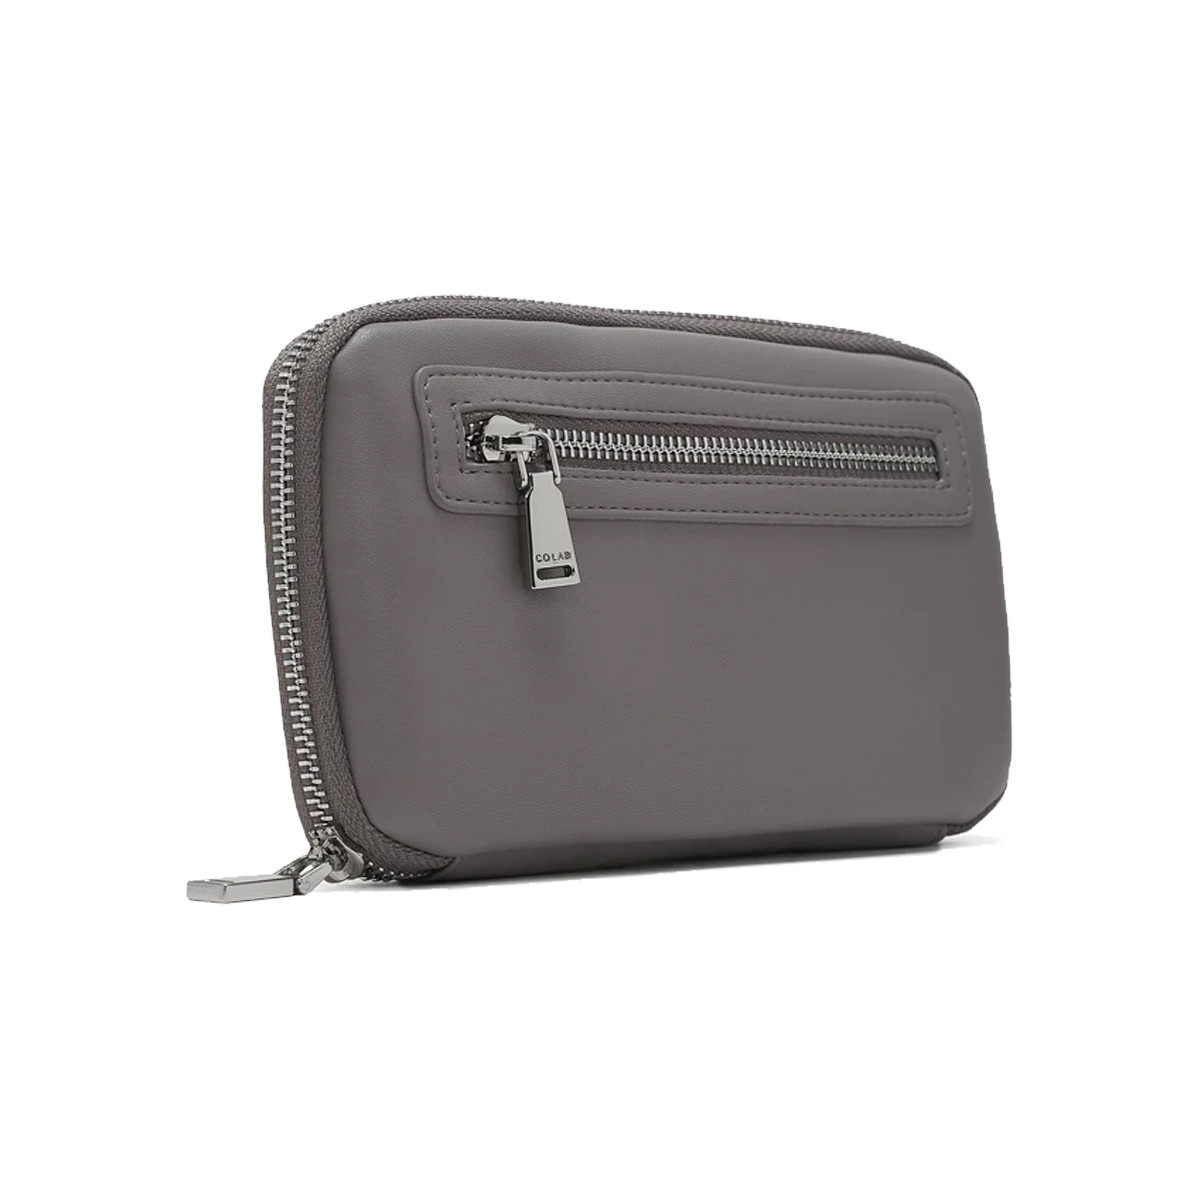 Colab Colab Smooth World Vegan Leather Wallet Grey